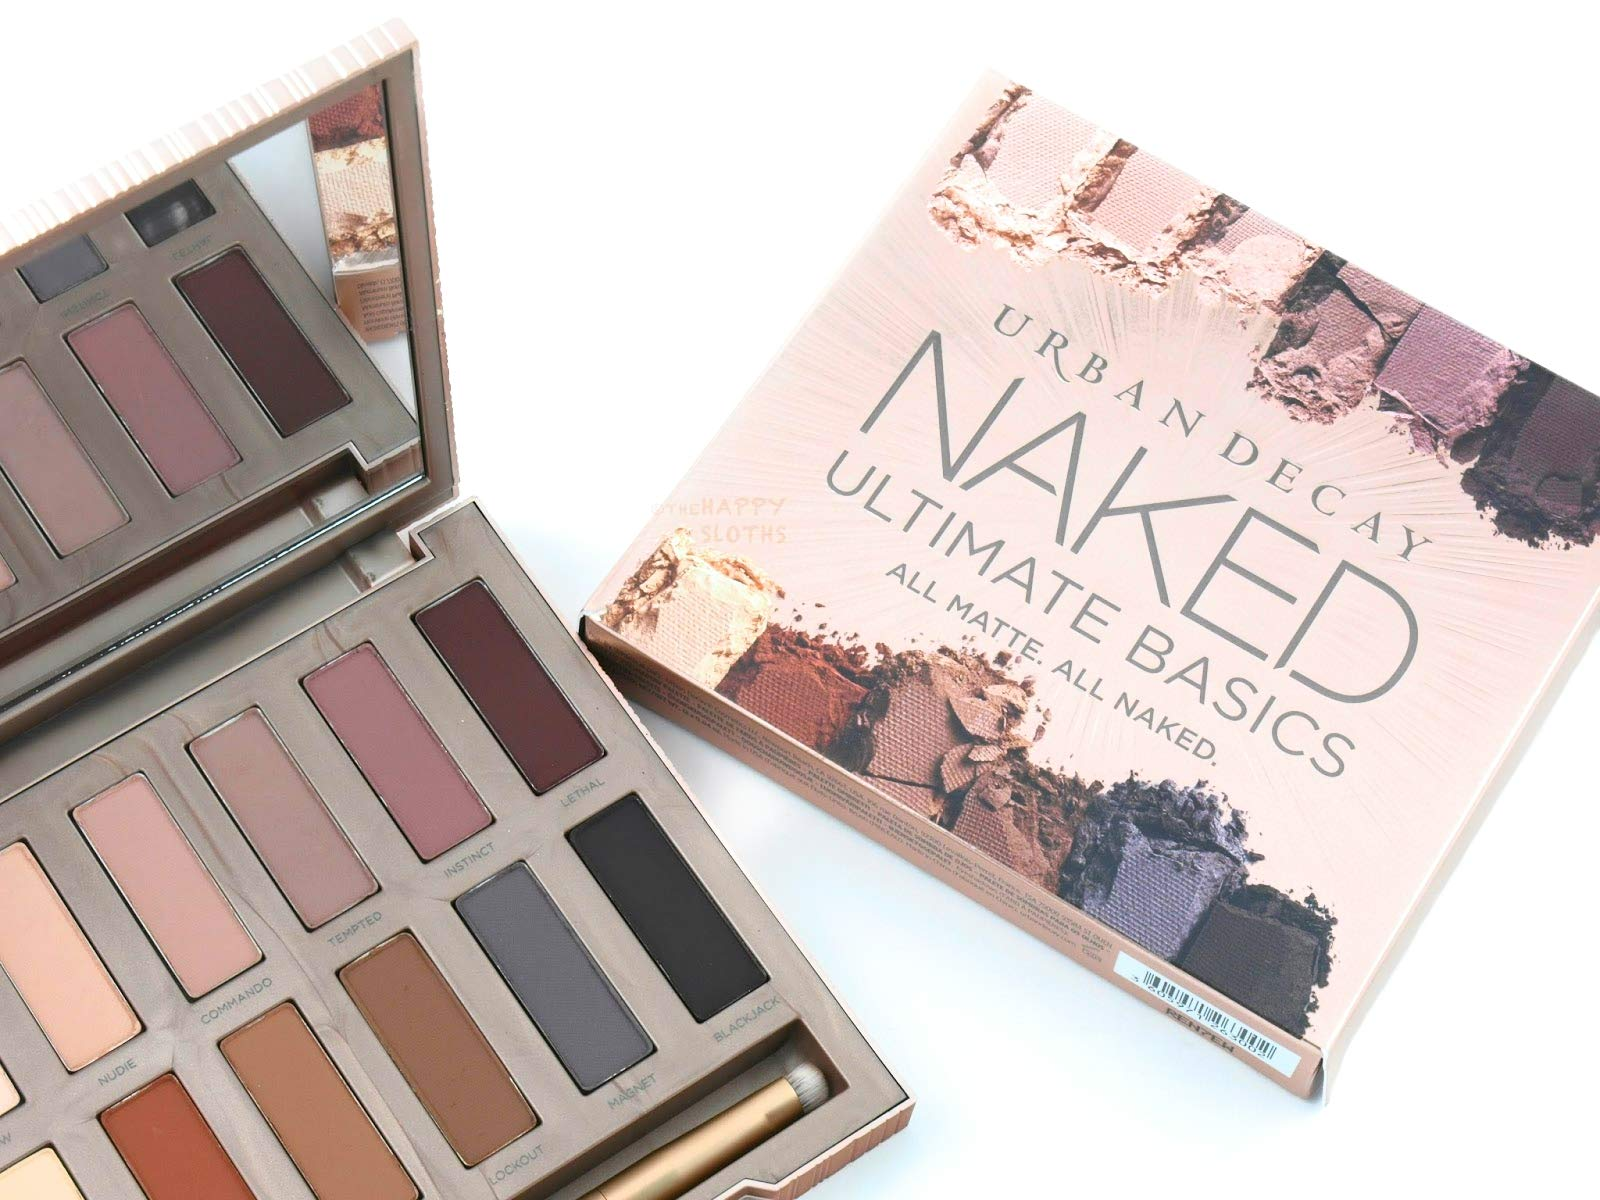 AccuColor & Shadow UD Ultimate Basics All Matte & All Naked